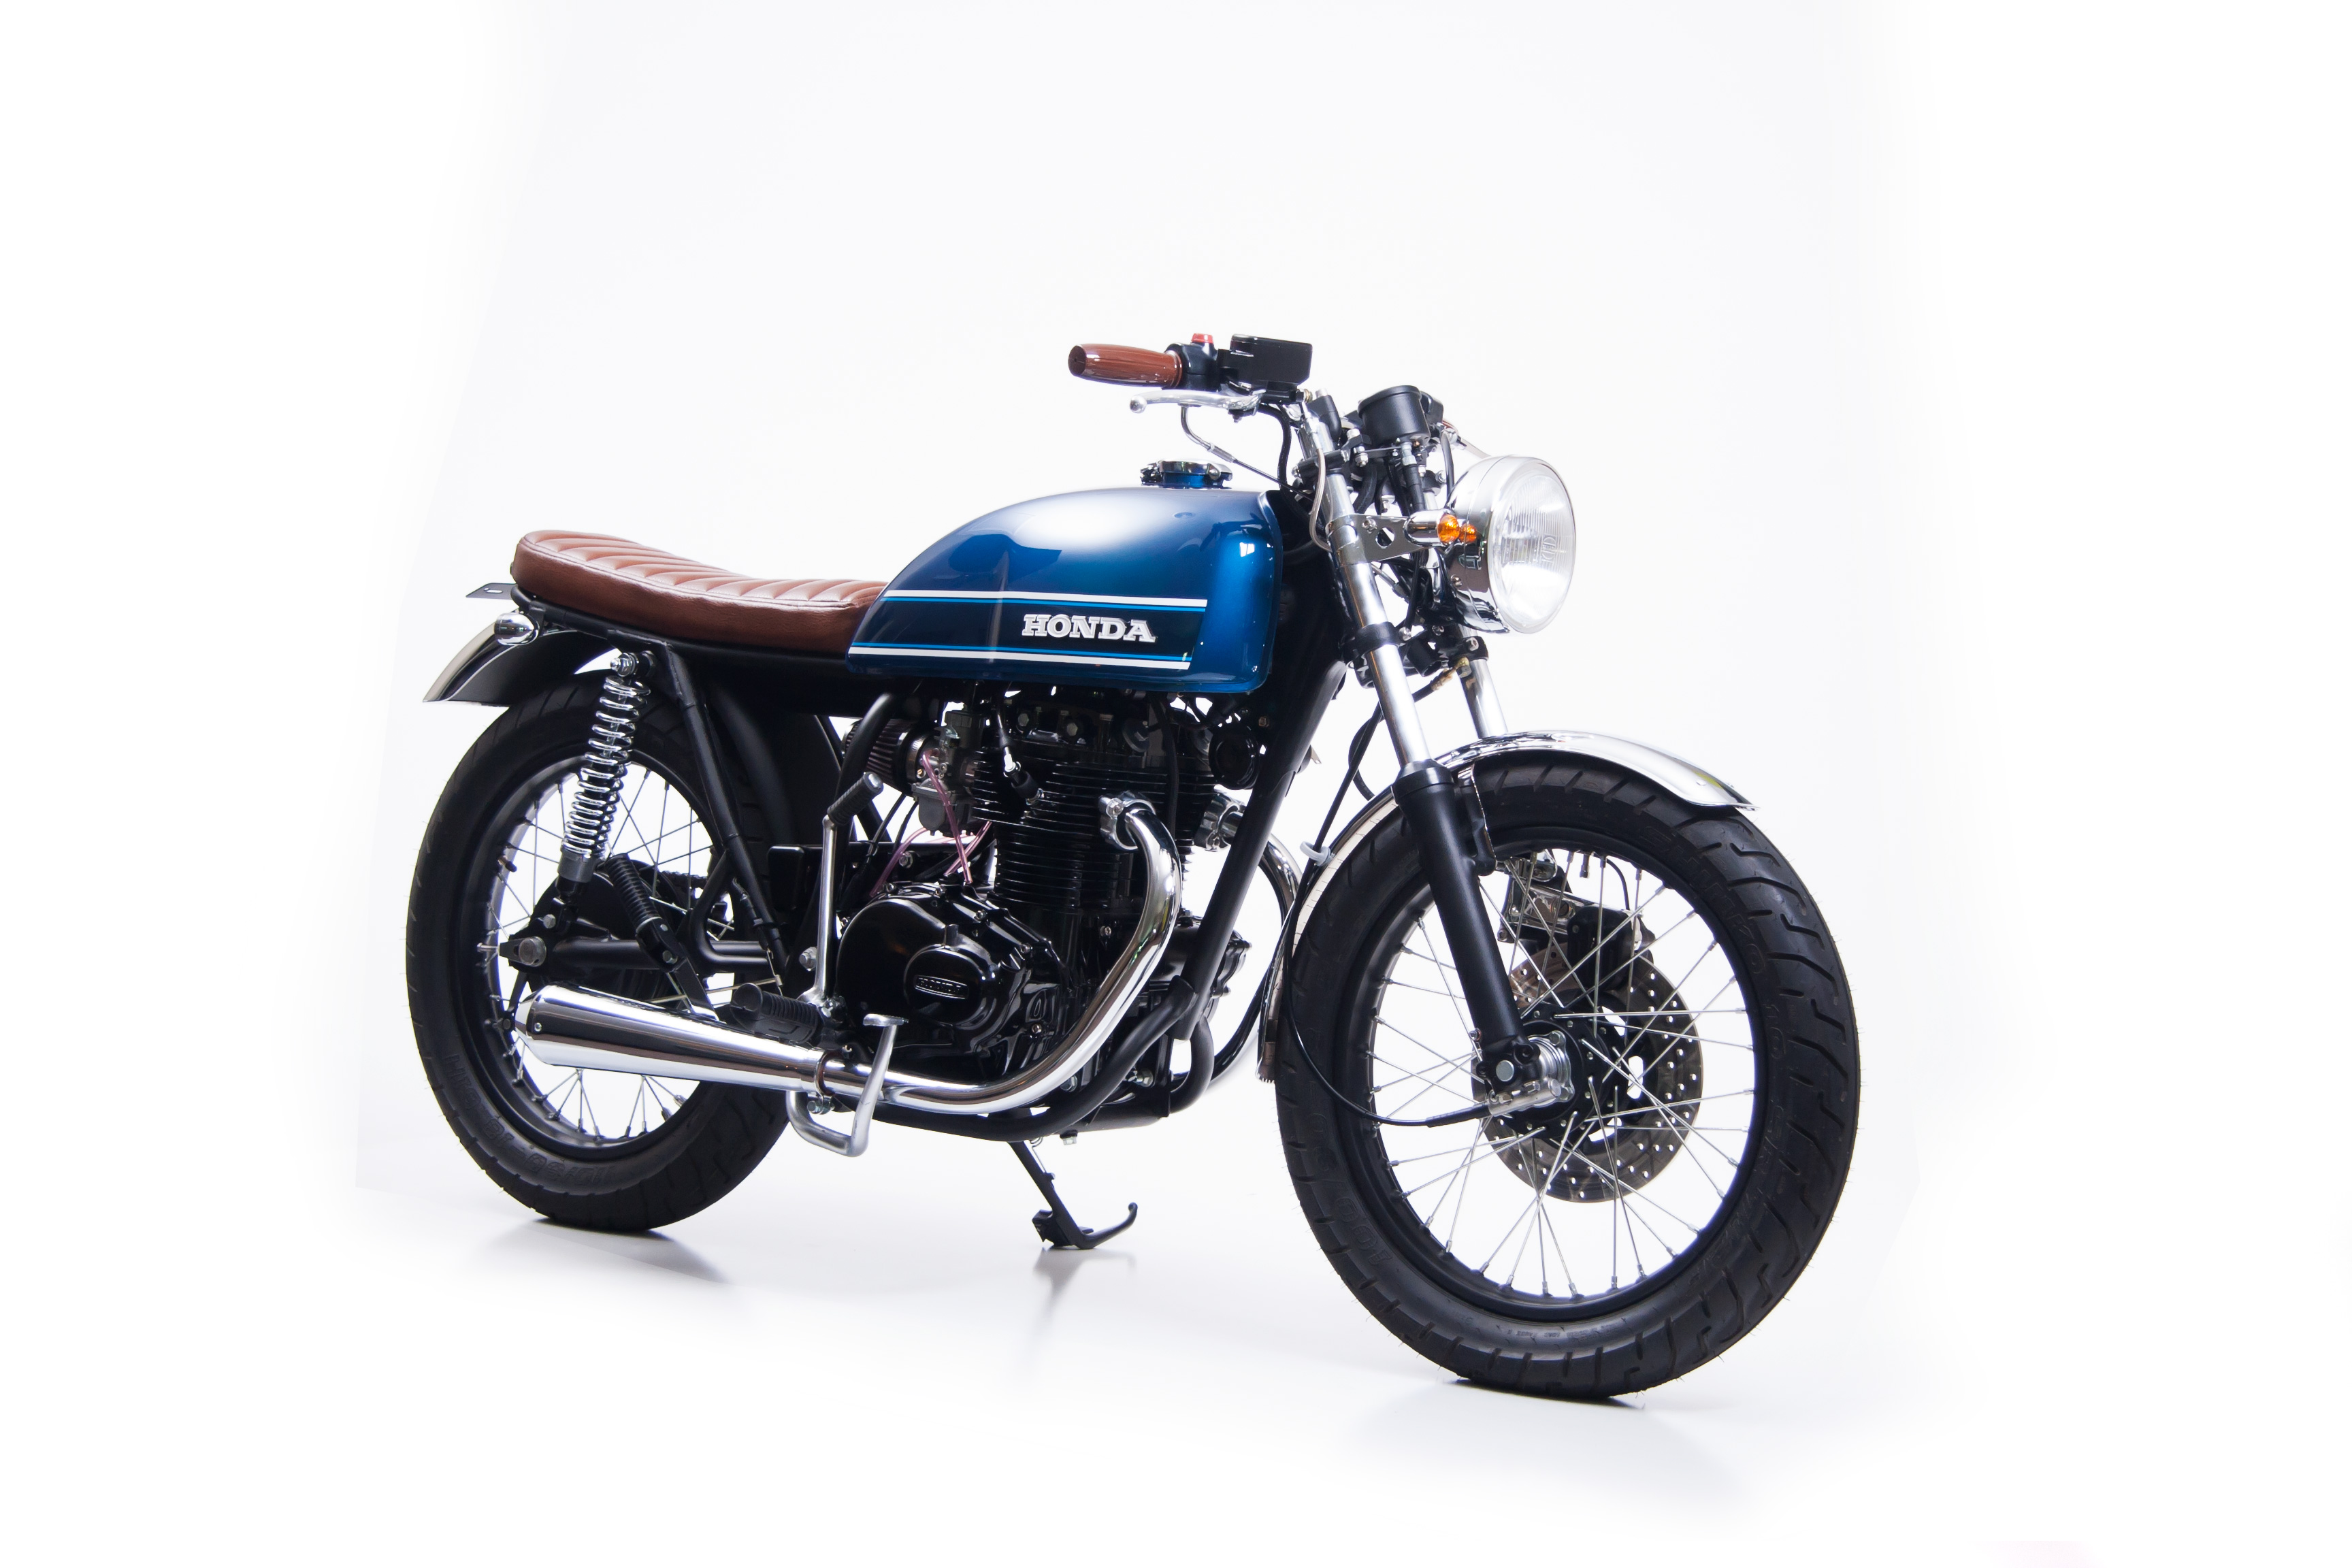 Cafe Racer - Custom restored 1976 Honda CB360T